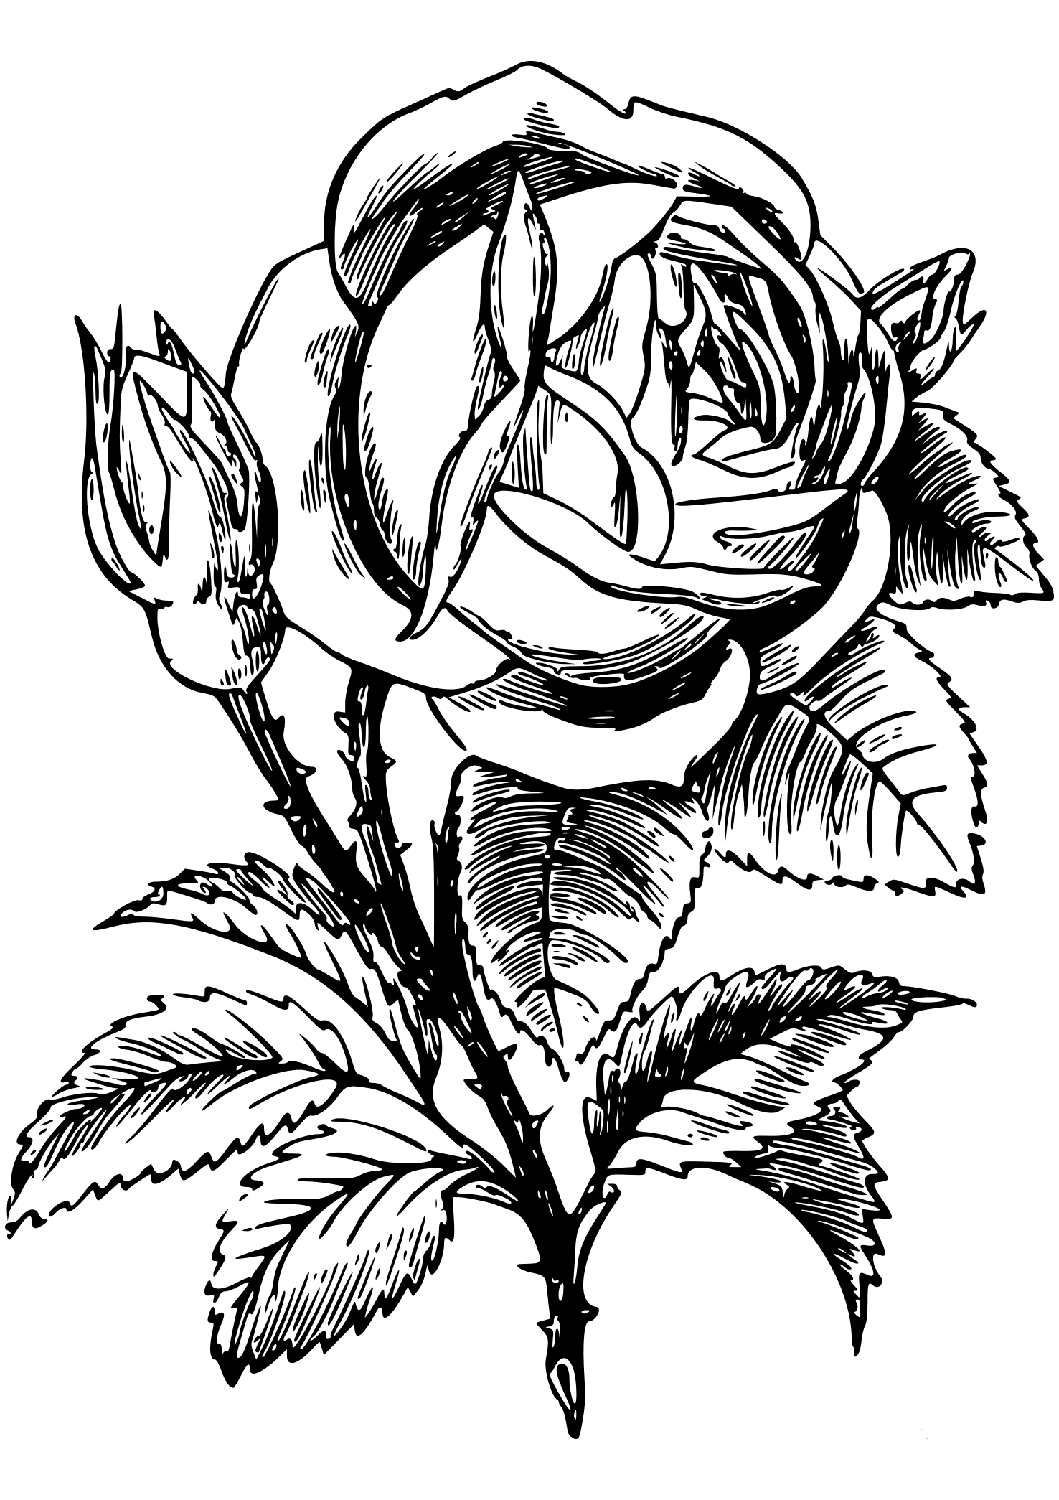 rose color sheets roses coloring pages to download and print for free sheets rose color